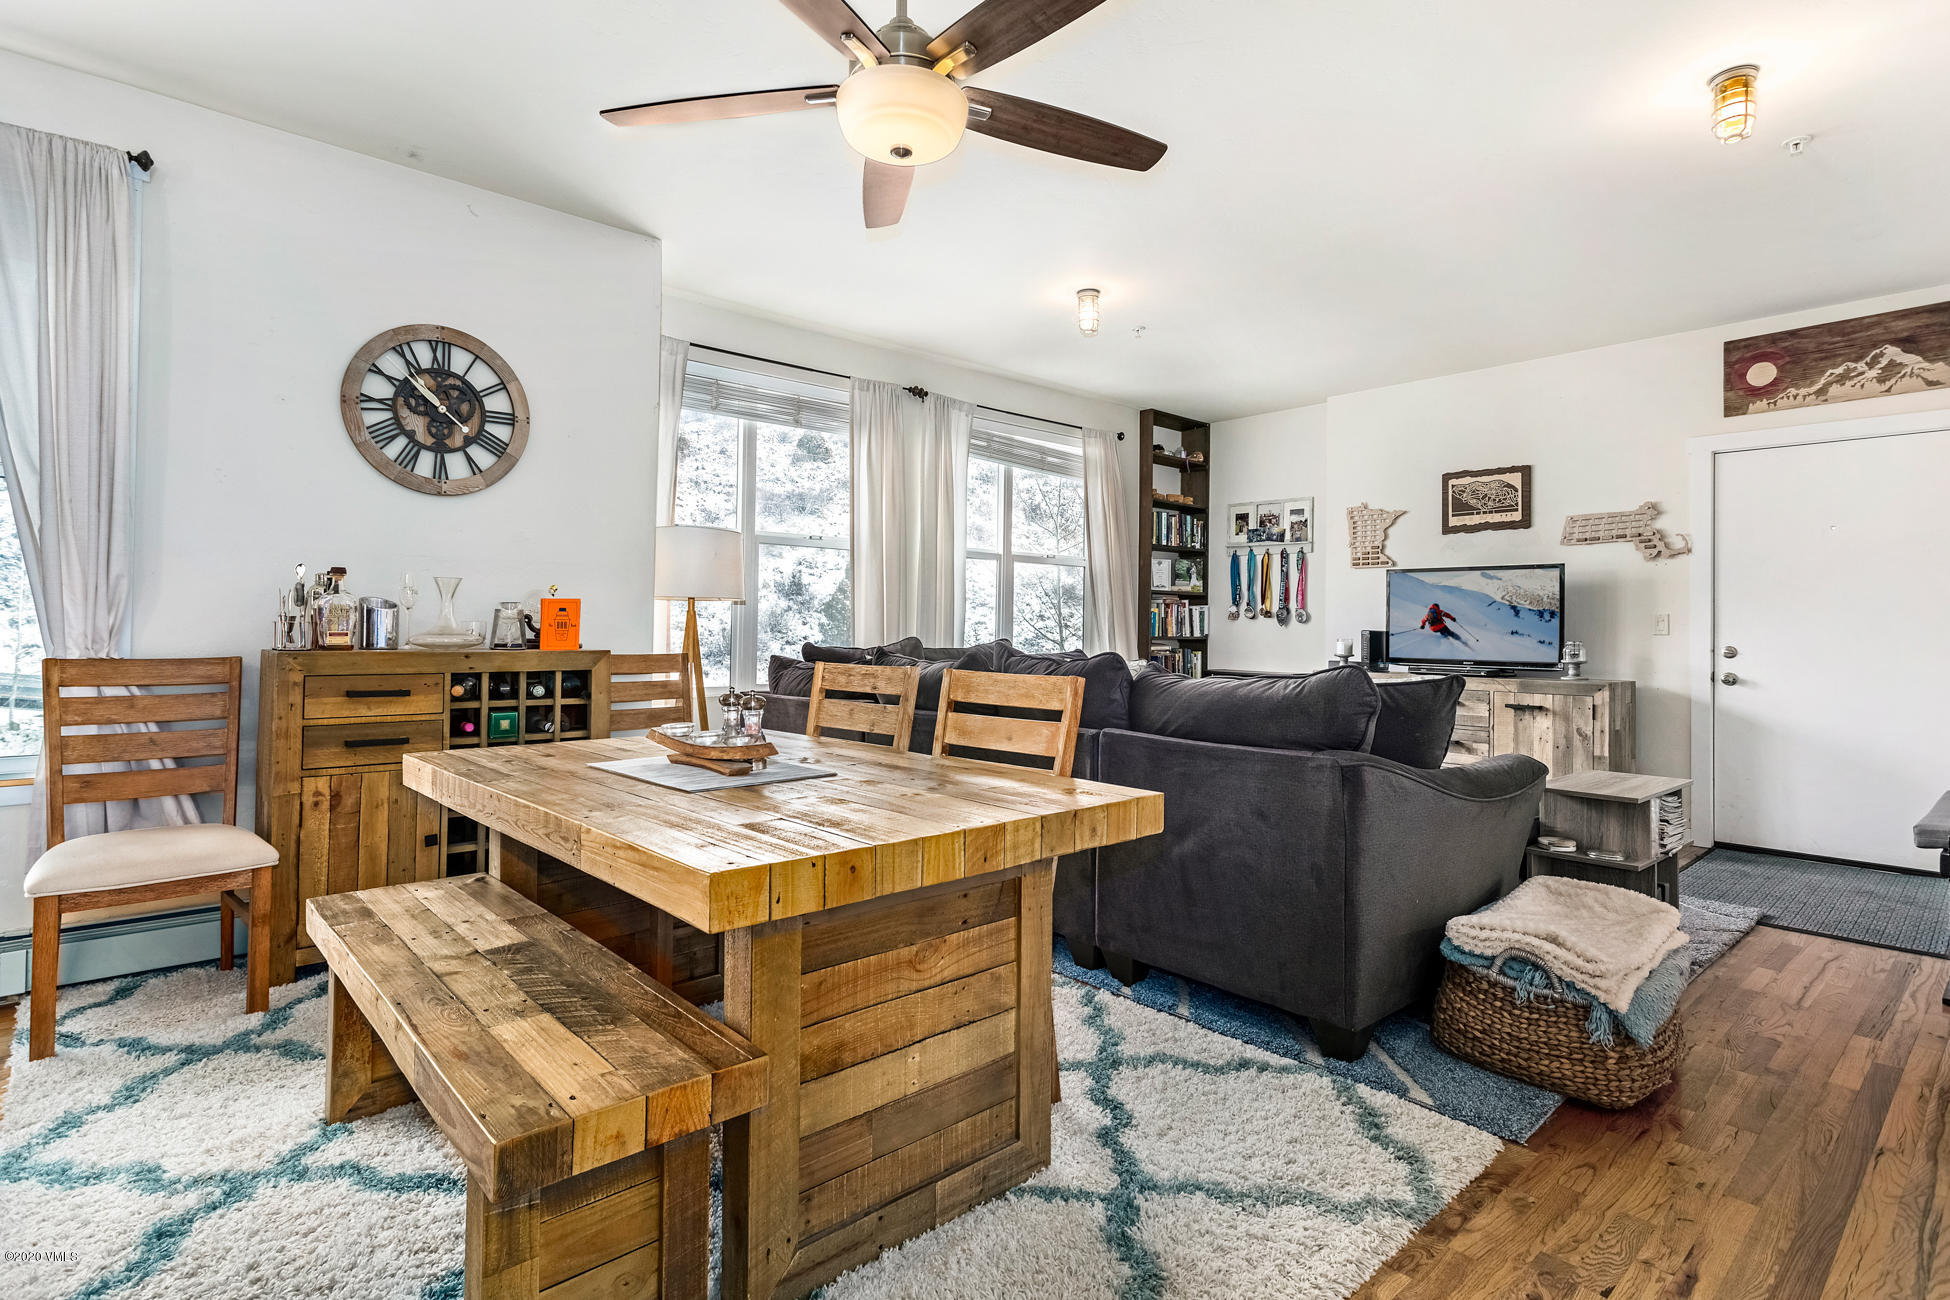 This nicely maintained, and spacious, two-bedroom, two-bathroom condo with a 1-car garage, is located minutes to Beaver Creek and Vail. Hardwood floors throughout, gas heat and an extra deep garage for additional storage are just a few of the great features in this home. Don't miss this opportunity!